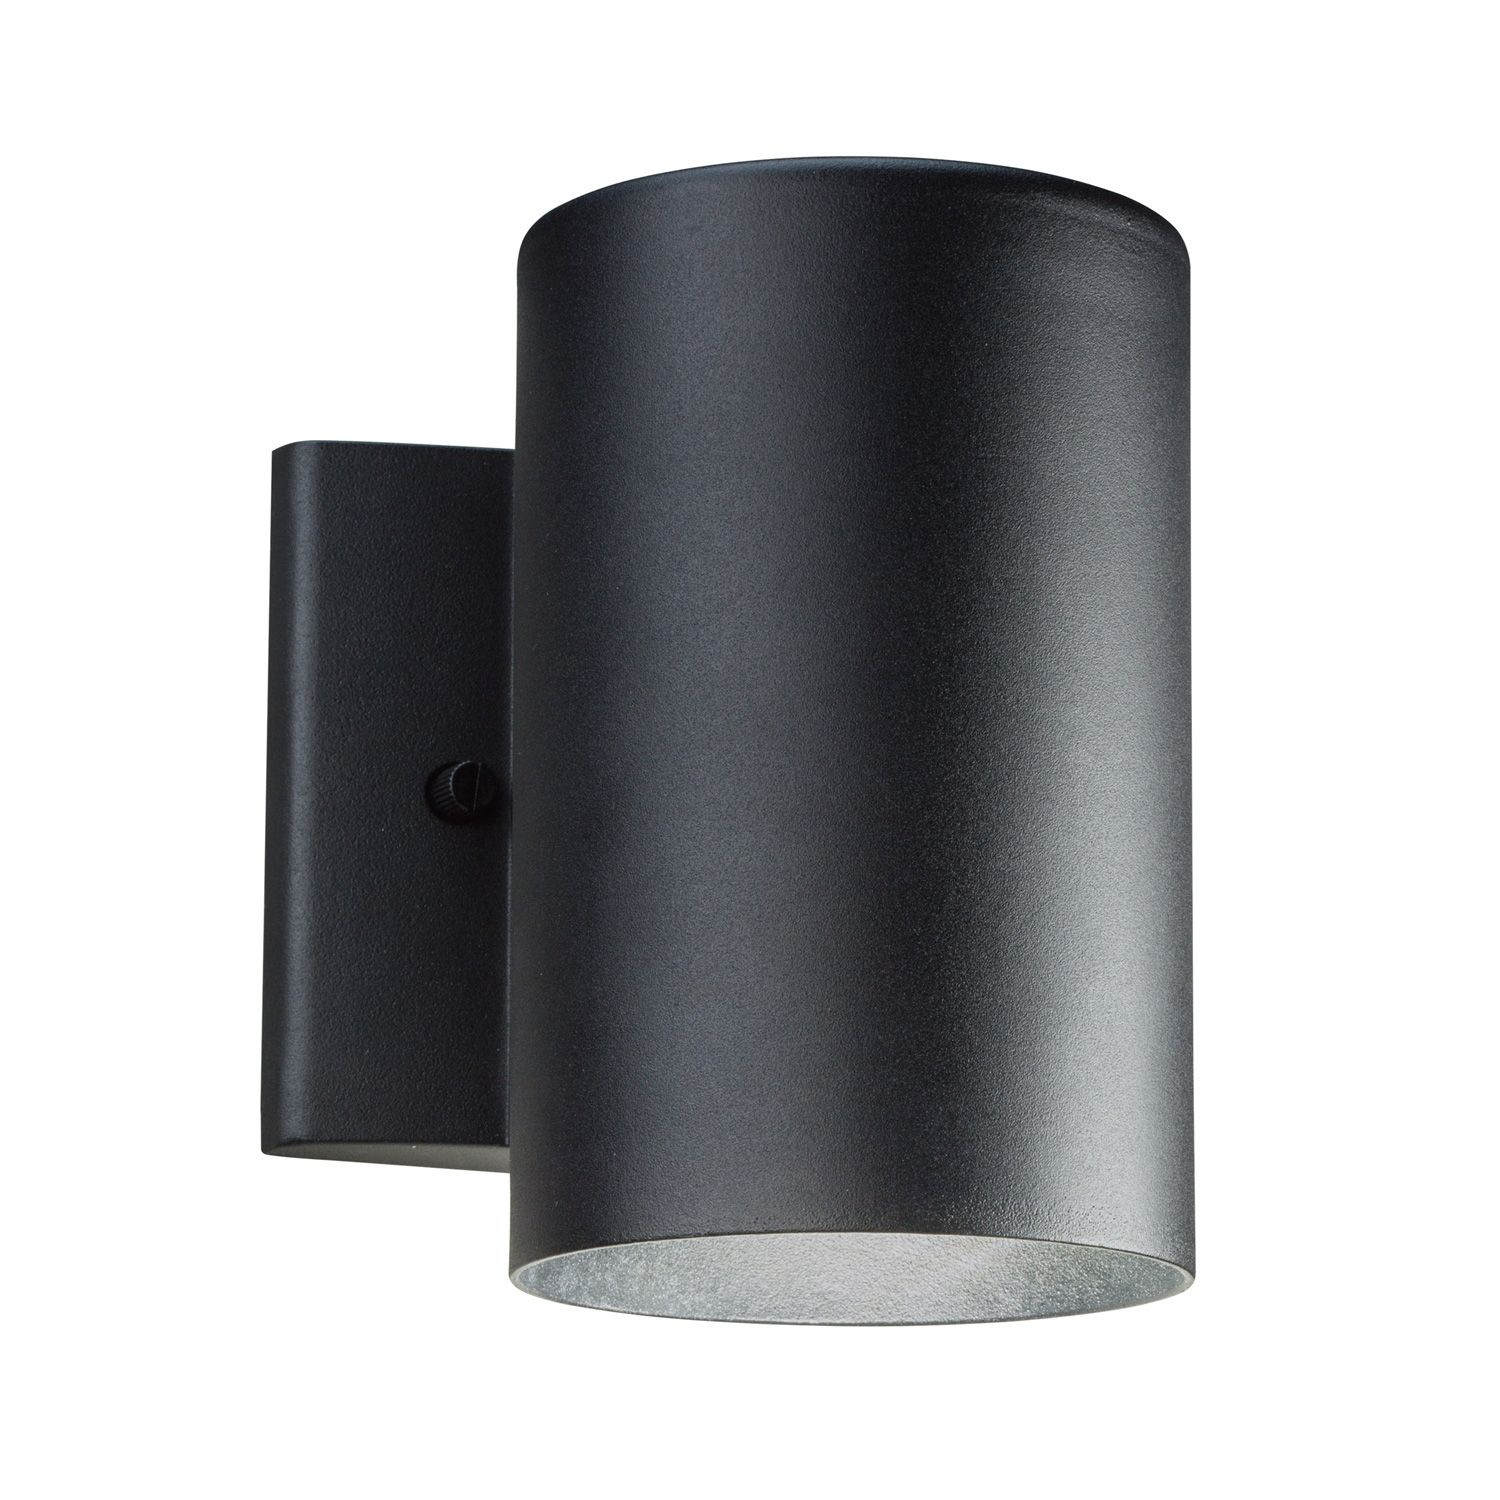 Cylinder Led Downlight Wall Sconce By Kichler 11250azt30 Led Outdoor Wall Lights Outdoor Wall Lighting Outdoor Wall Sconce